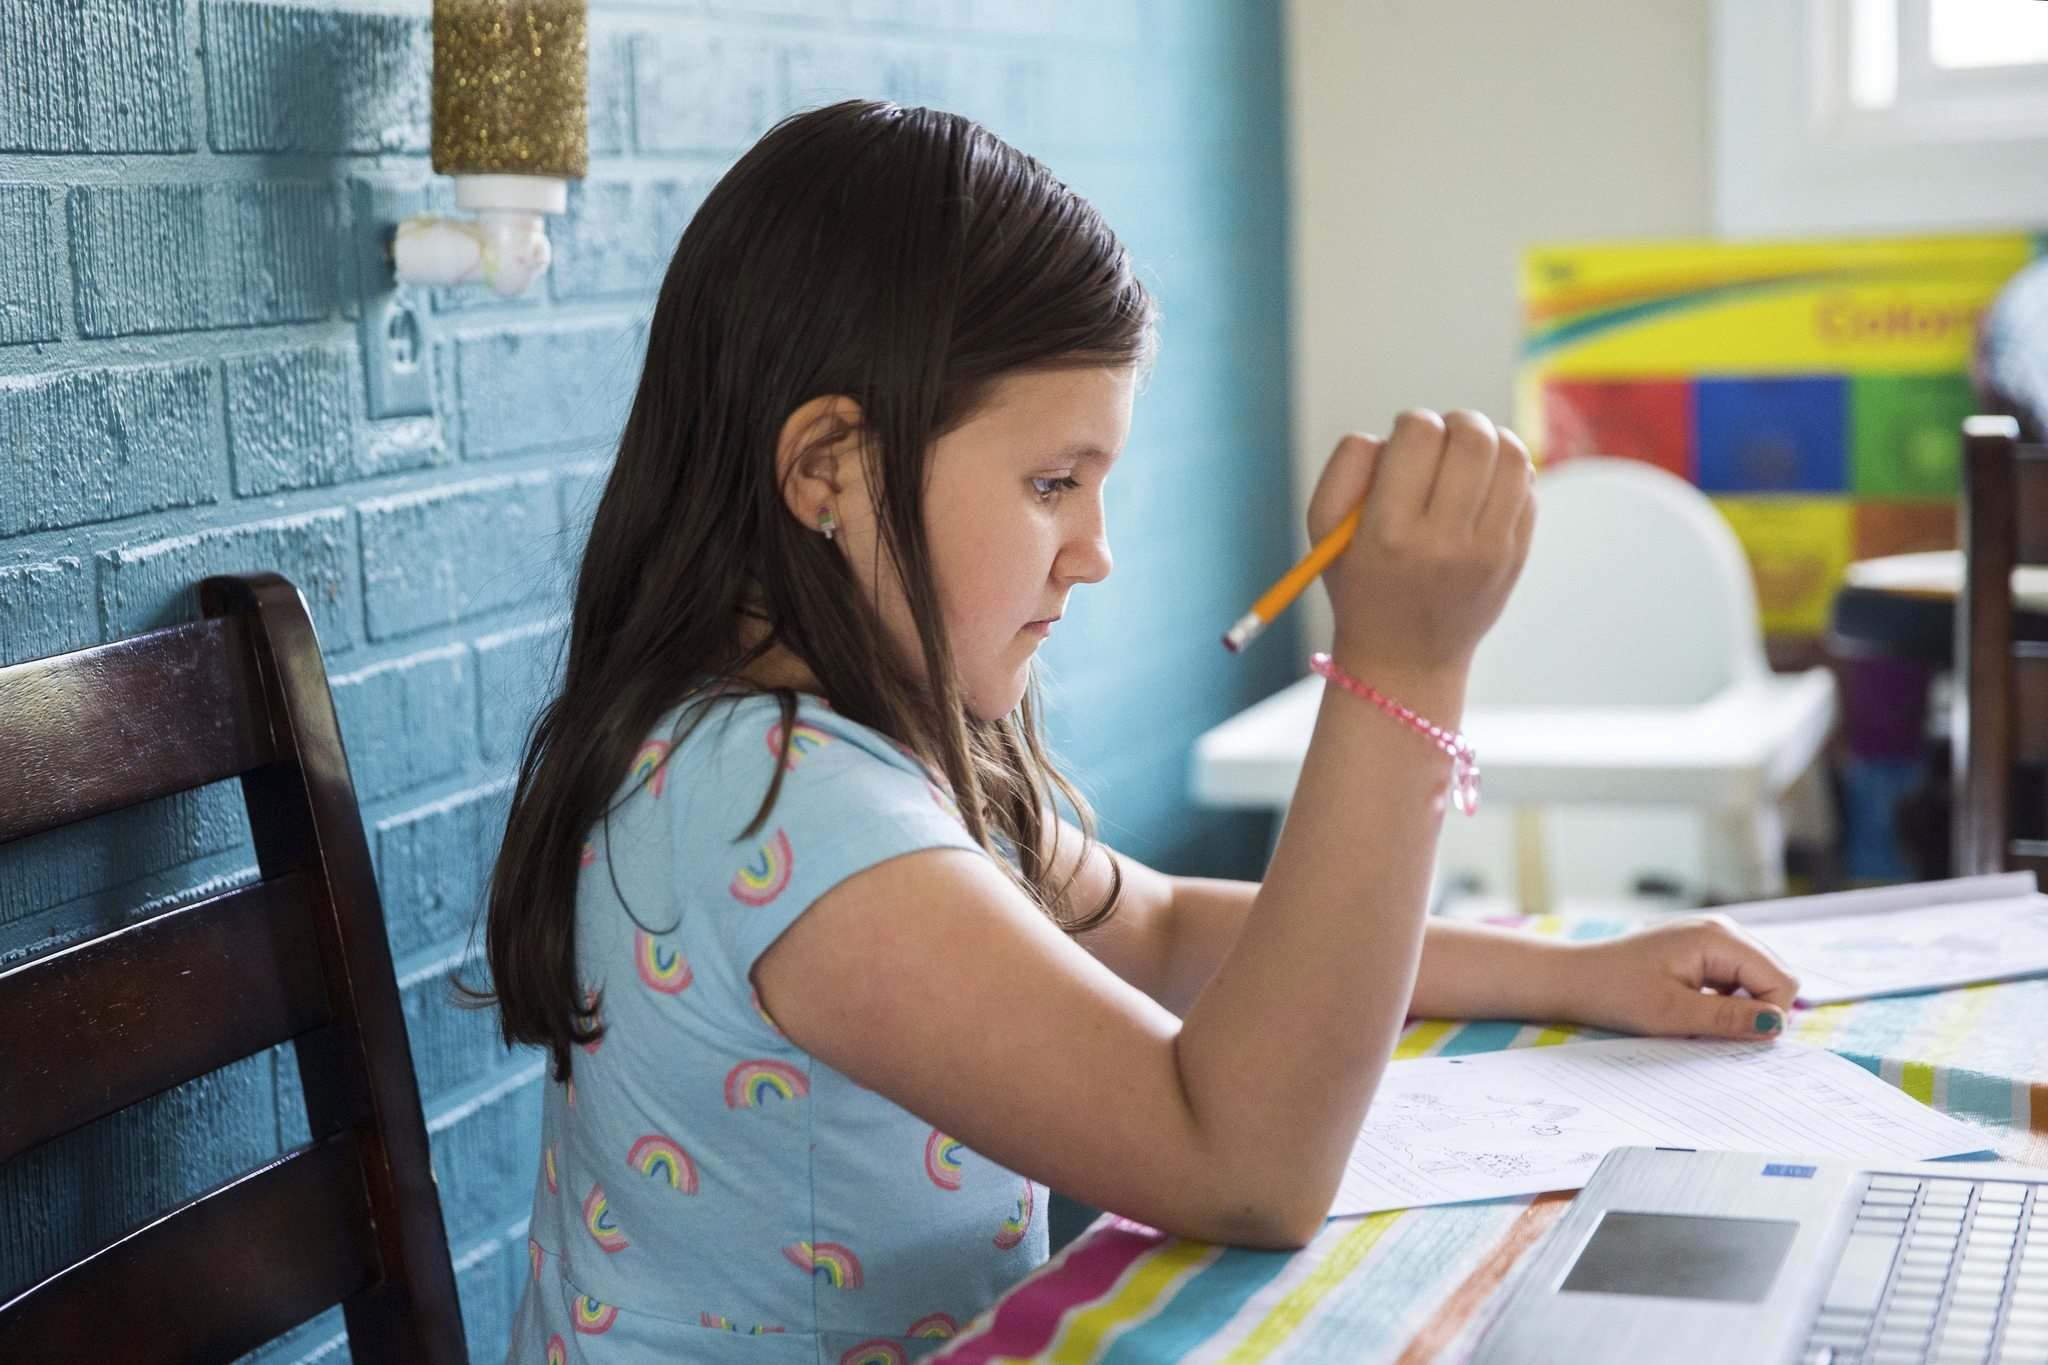 Some days, Leah is motivated to do school work while other days, sadness creeps in. (Mikaela MacKenzie / Winnipeg Free Press)</p>